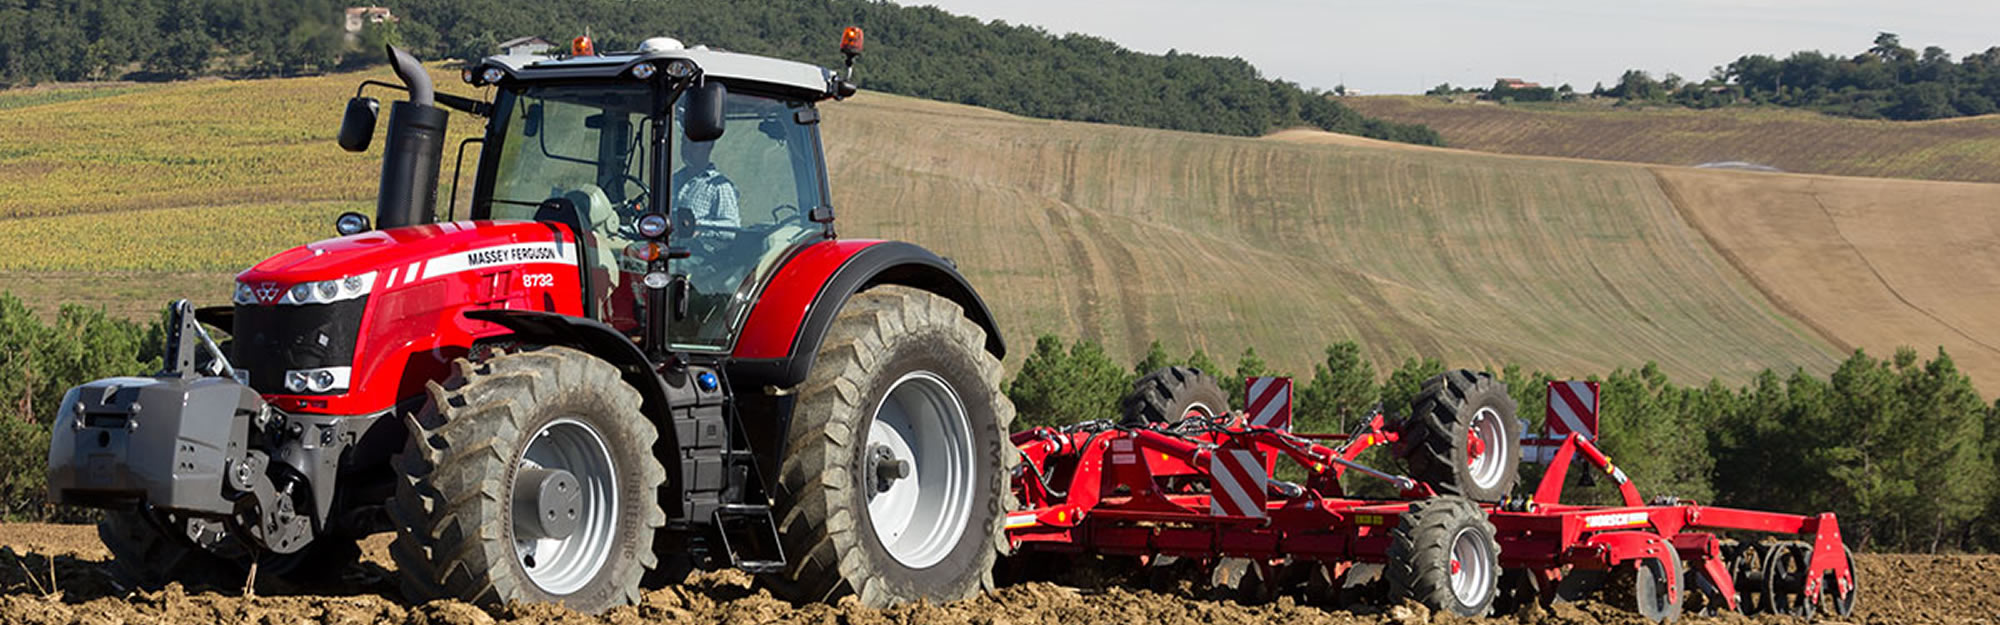 MF 8700 FREE Specification Worth £9,500 FREE Servicing 5 Years / 3500 Warranty & FREE Servicing